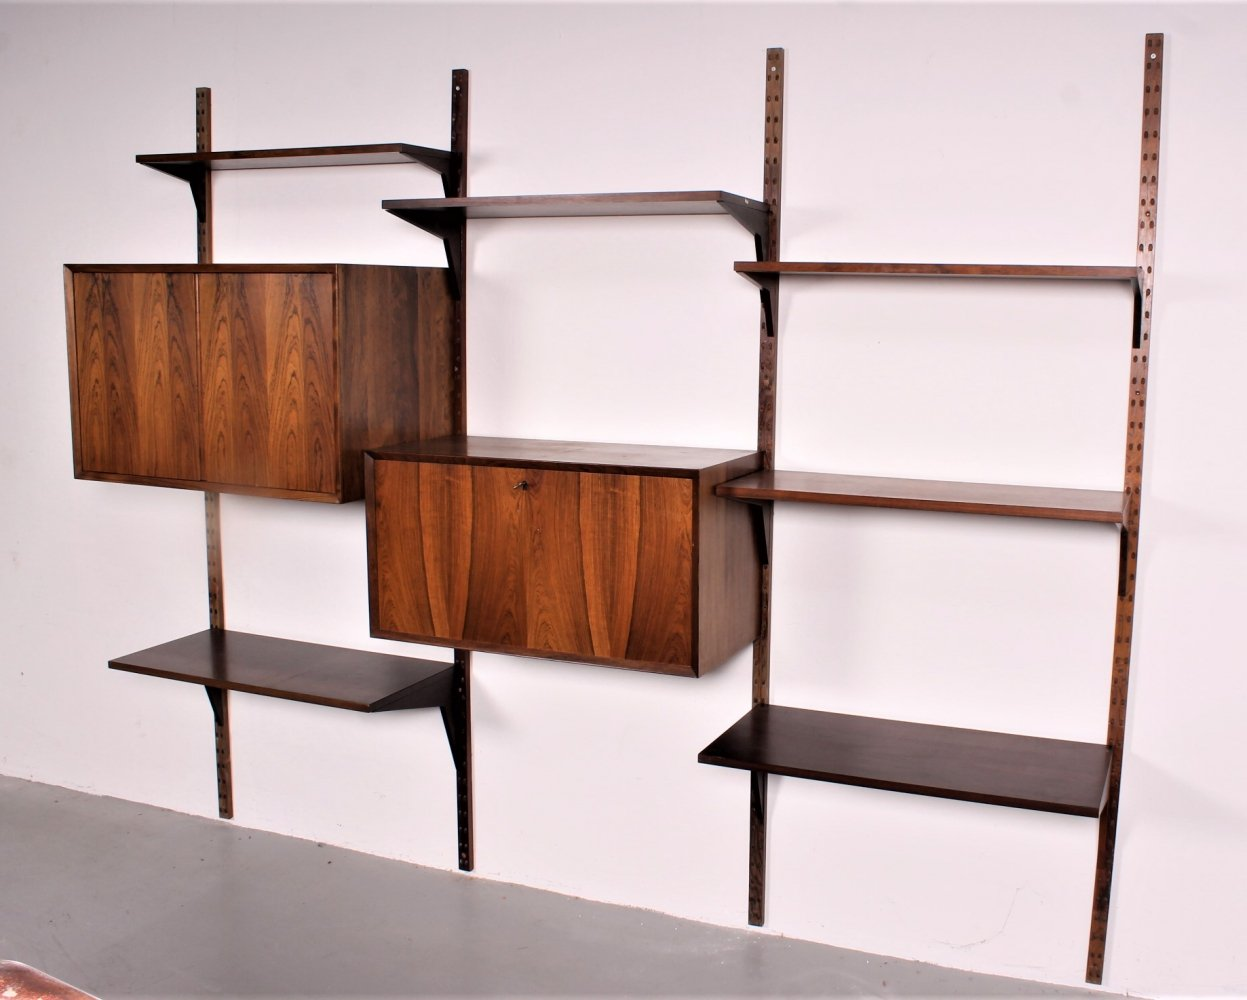 Rosewood Wall system with desk cabinet by Poul Cadovius for Cado